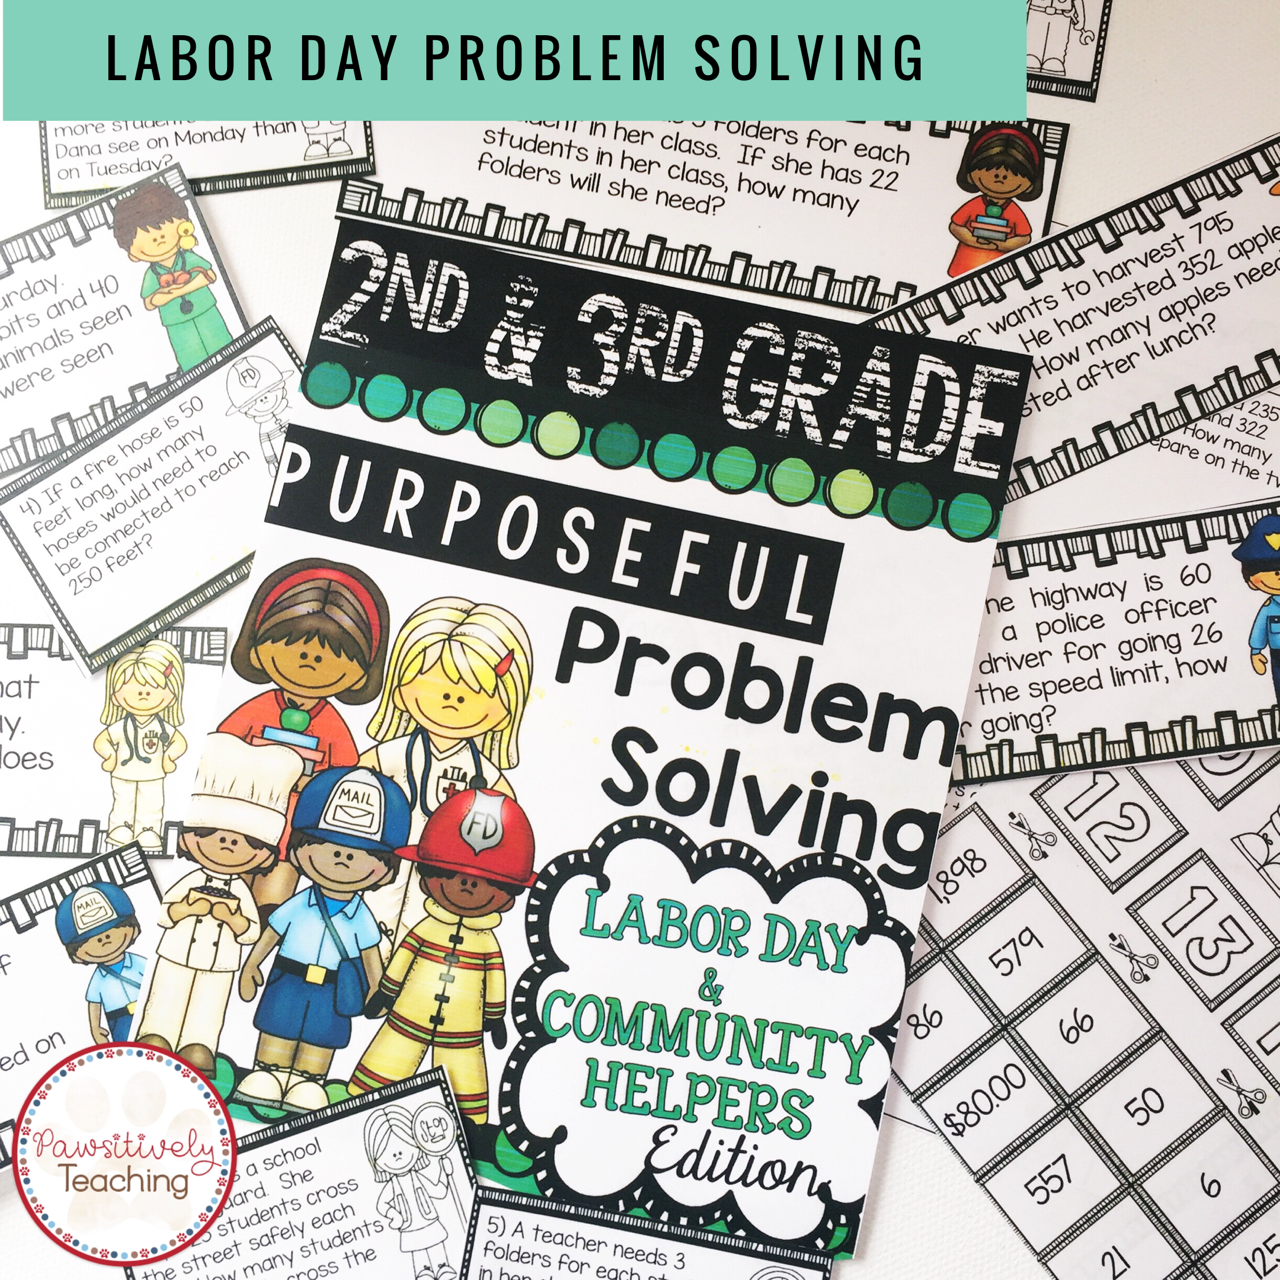 2nd Amp 3rd Grade Problem Solving Labor Day Community